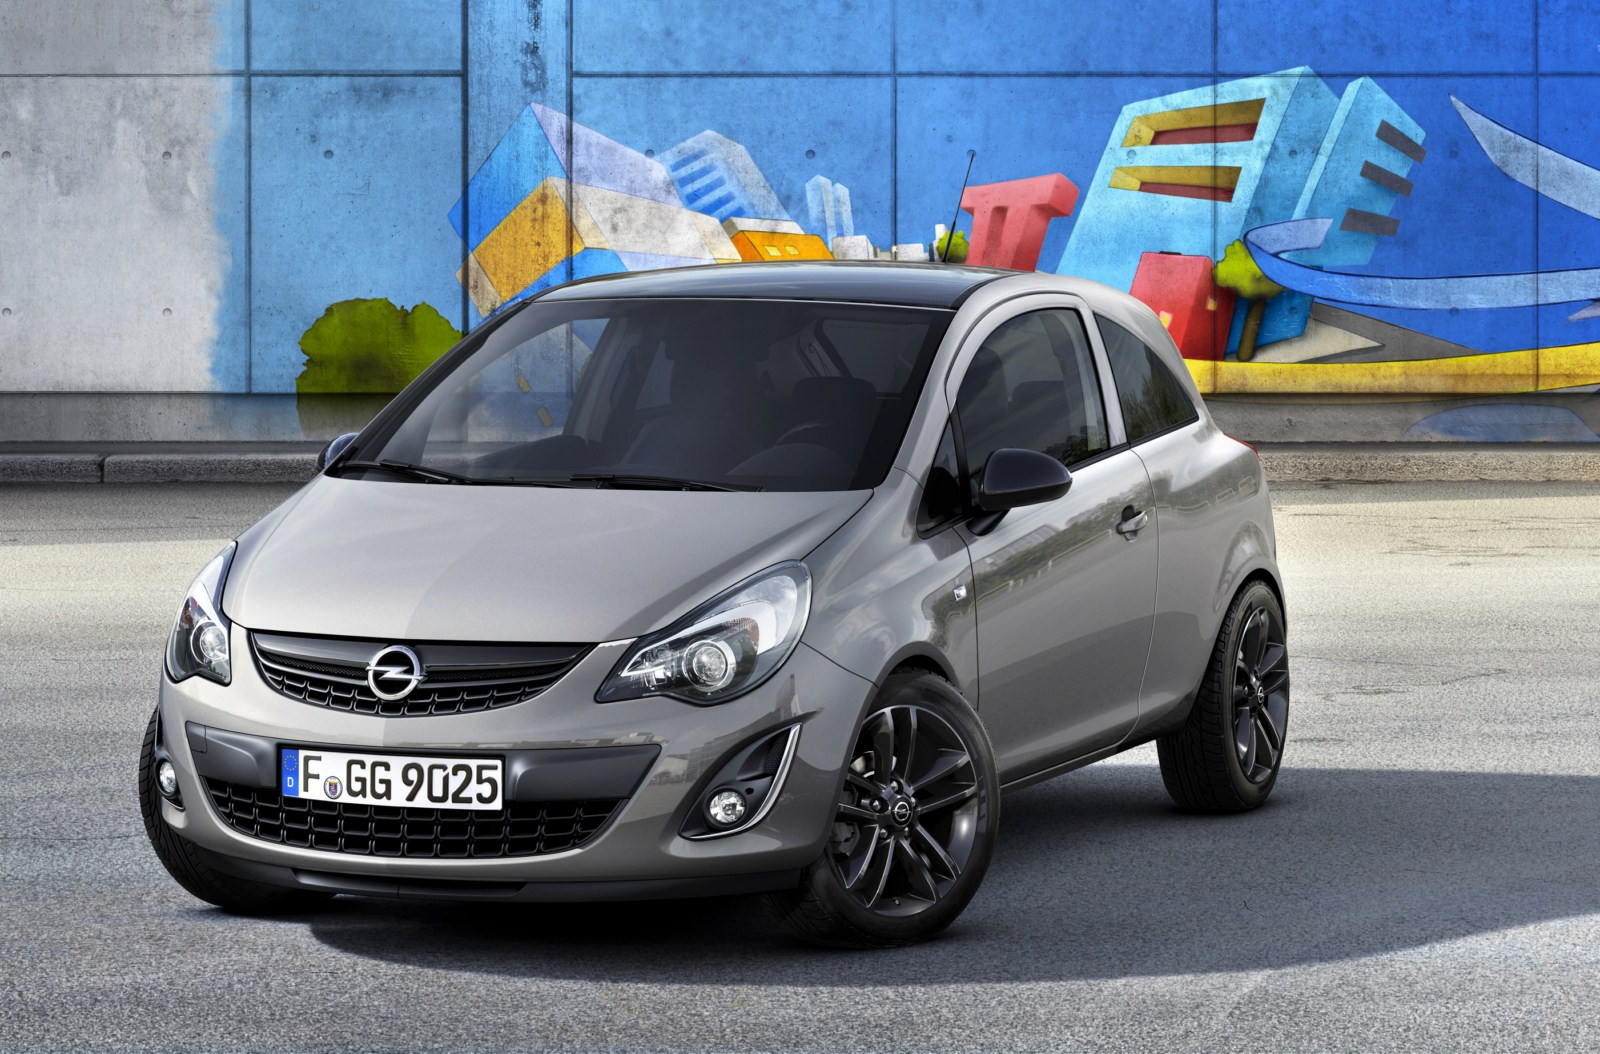 opel corsa kaleidoscope edition. Black Bedroom Furniture Sets. Home Design Ideas